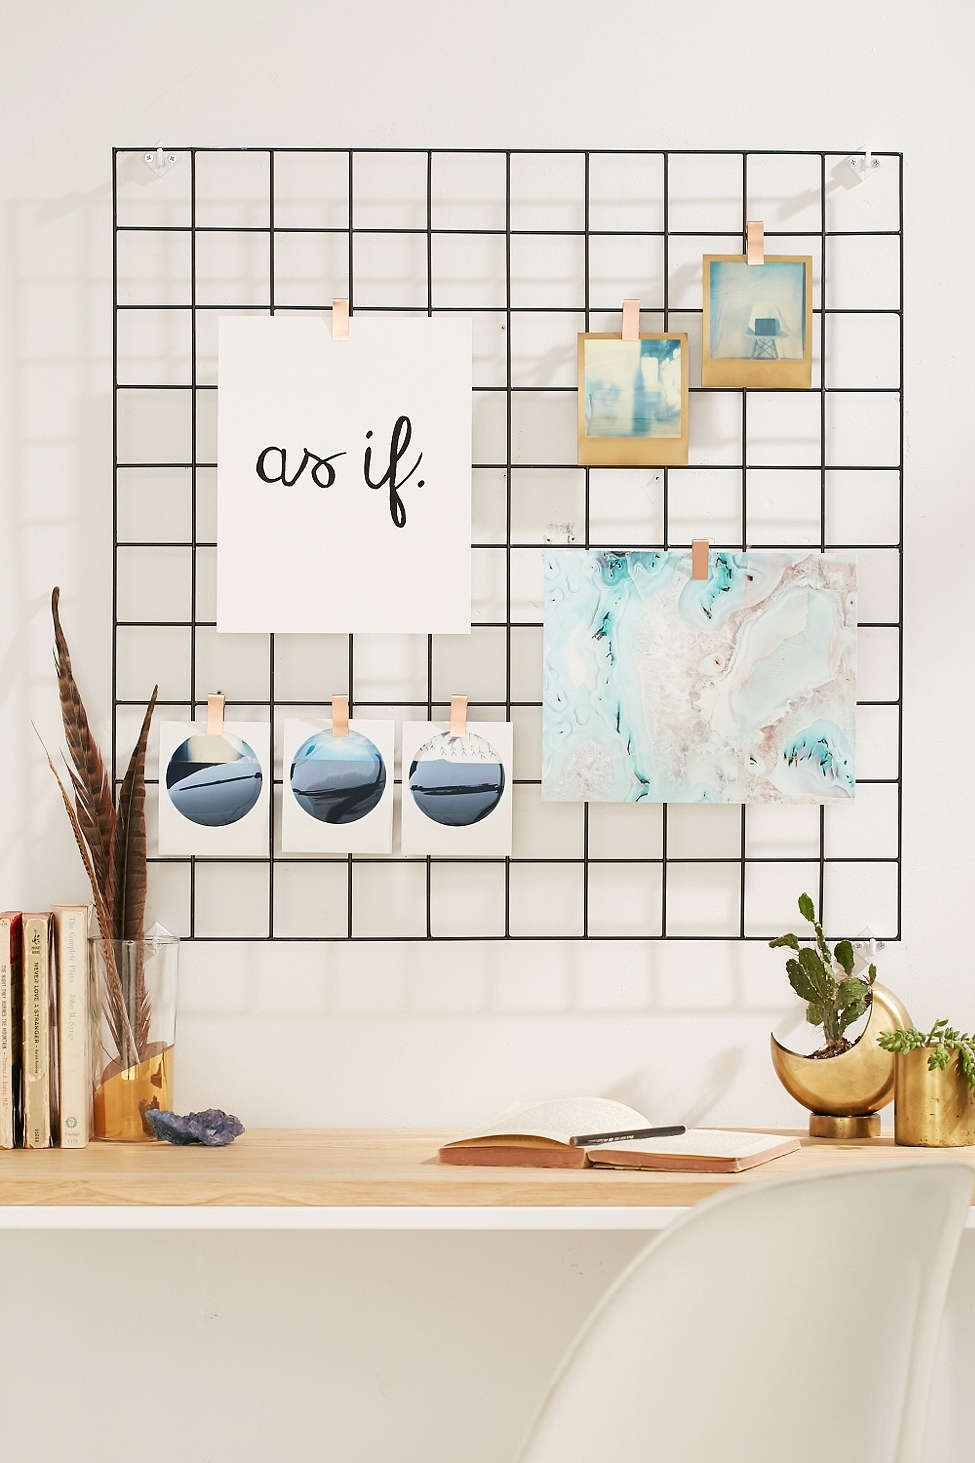 42 Urban Outfitters Wall Art, 10 Things To Buy At Urban Outfitters With 2018 Urban Outfitters Wall Art (View 1 of 20)